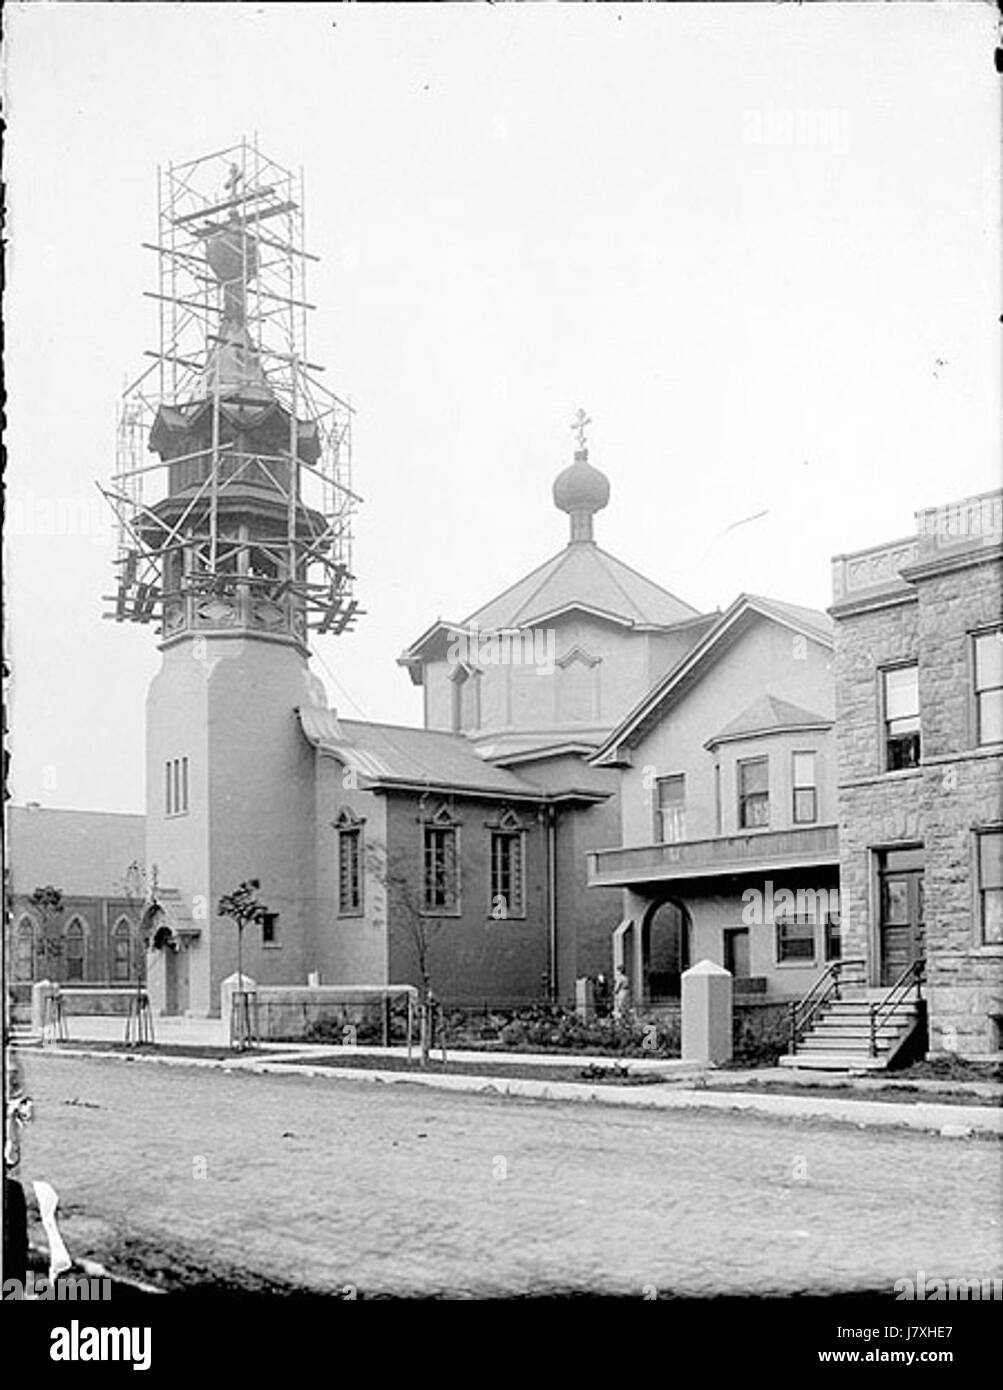 1905 Chicago Holy Trinity bell tower under construction - Stock Image